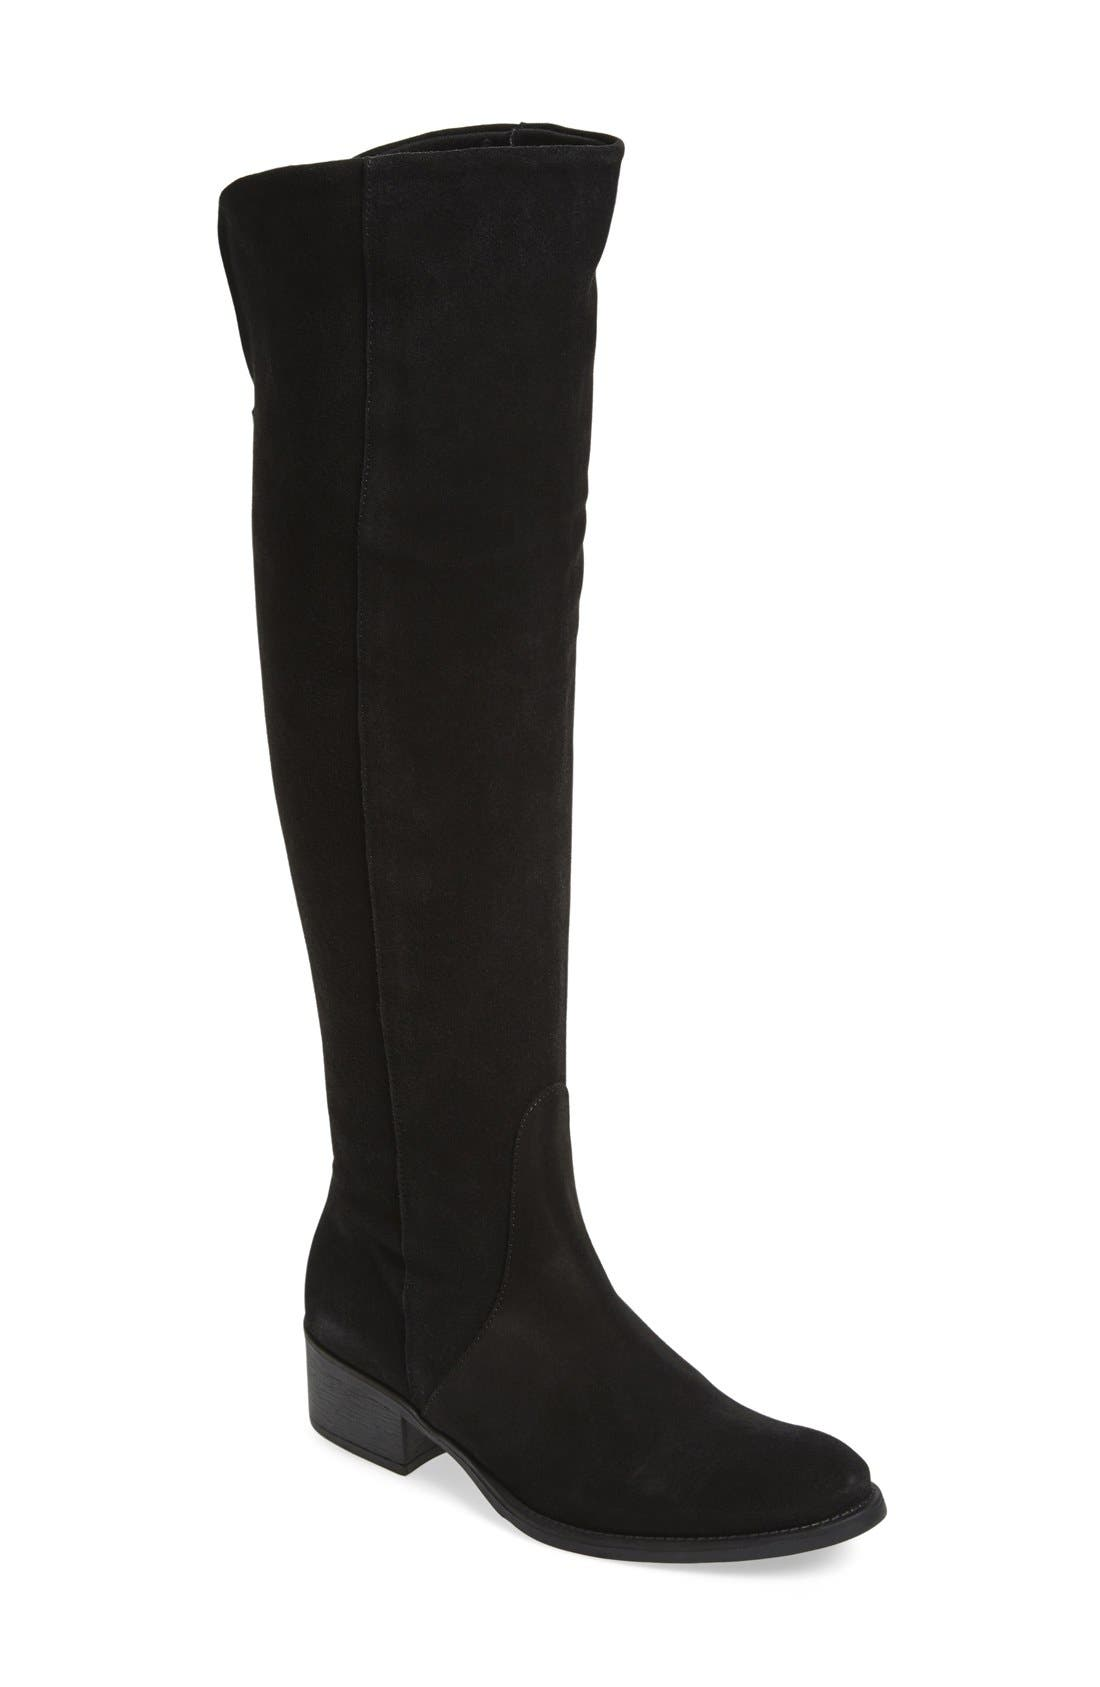 'Tallin' Over-The-Knee Riding Boot,                             Main thumbnail 1, color,                             BLACK SUEDE